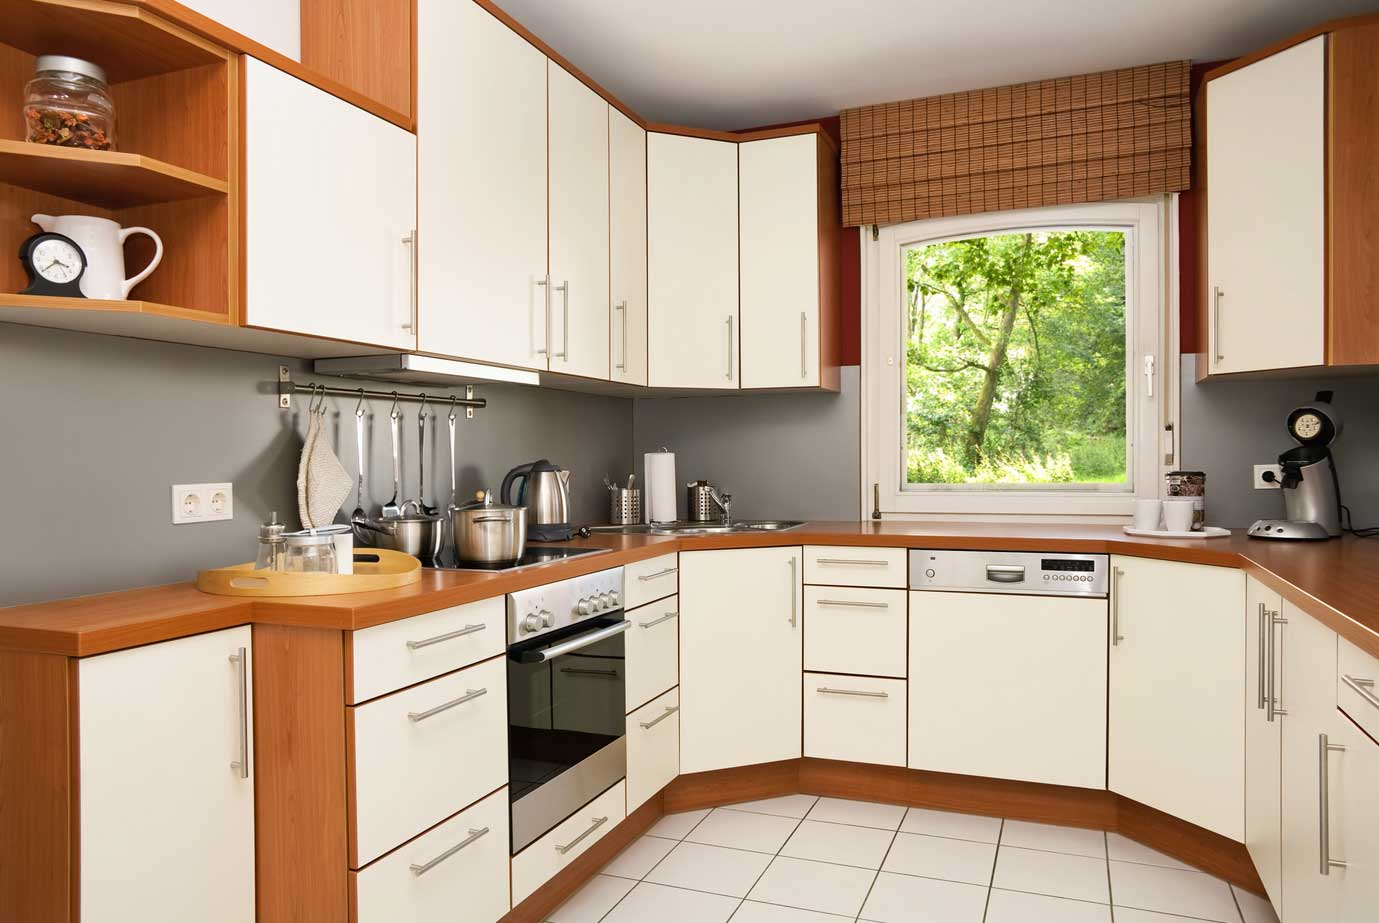 Does Your Kitchen Feel Too Small?